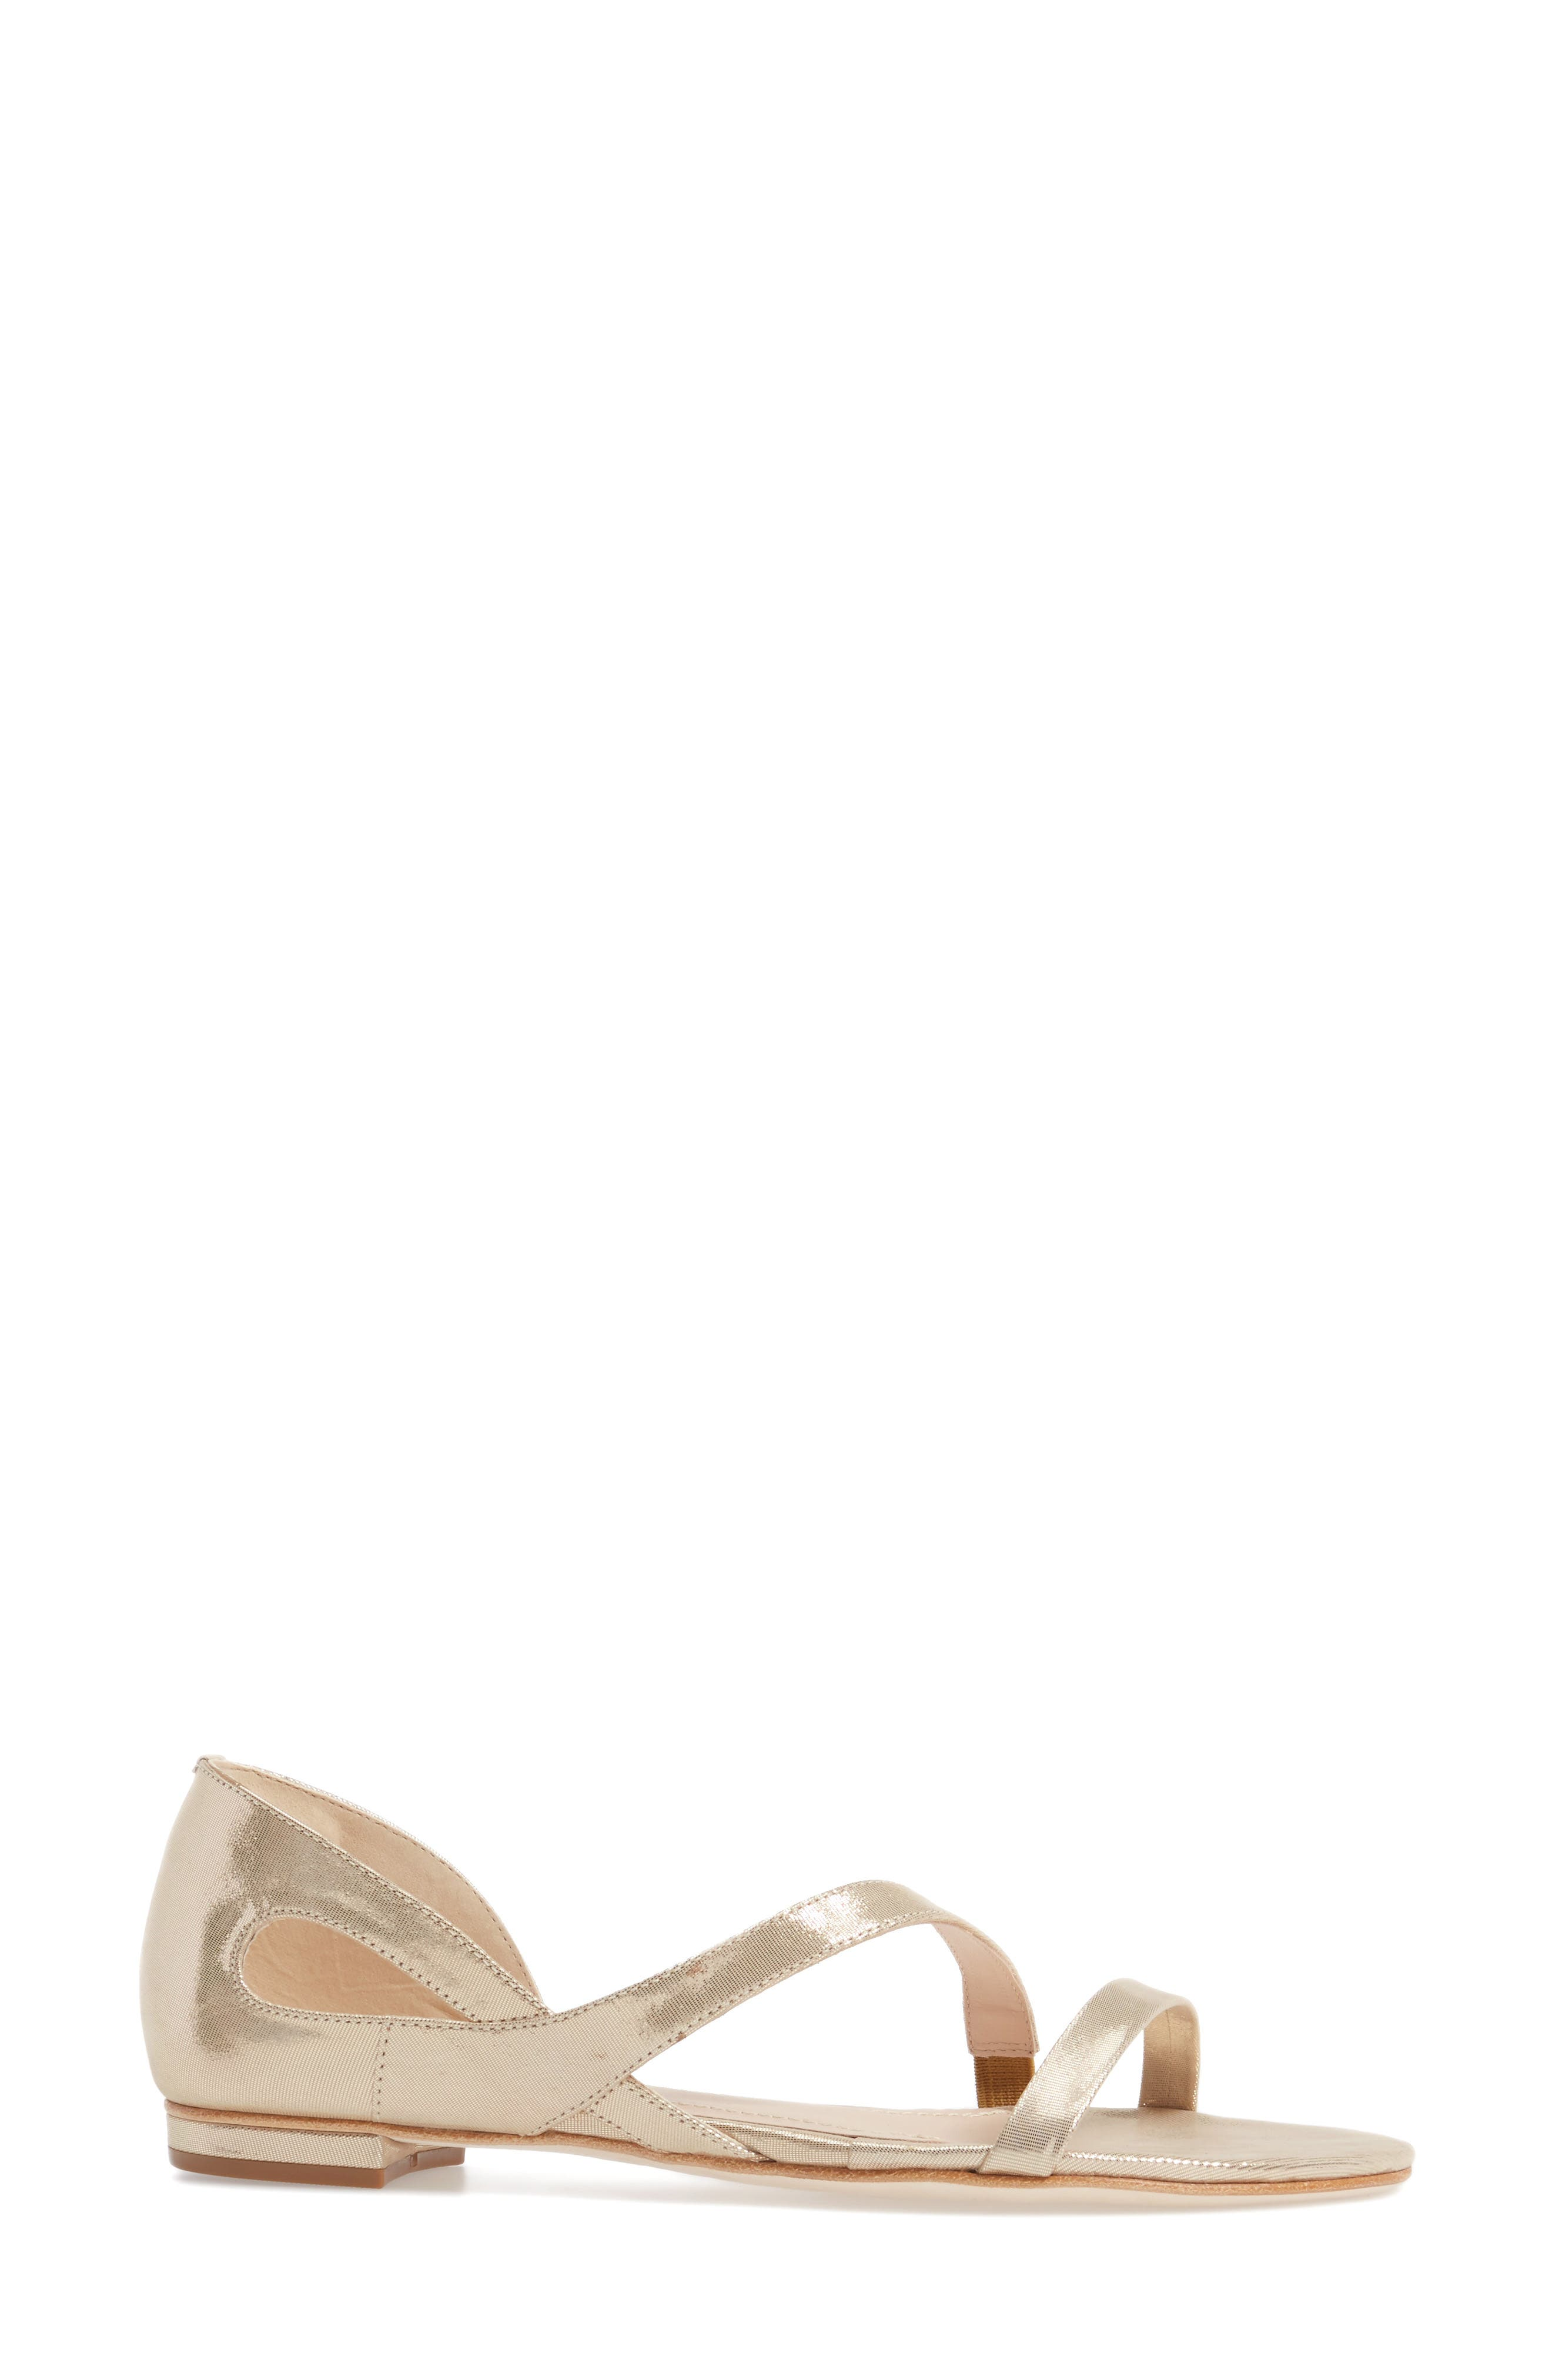 KLUB NICO, Jeanne Sandal, Alternate thumbnail 3, color, CHAMPAGNE LEATHER